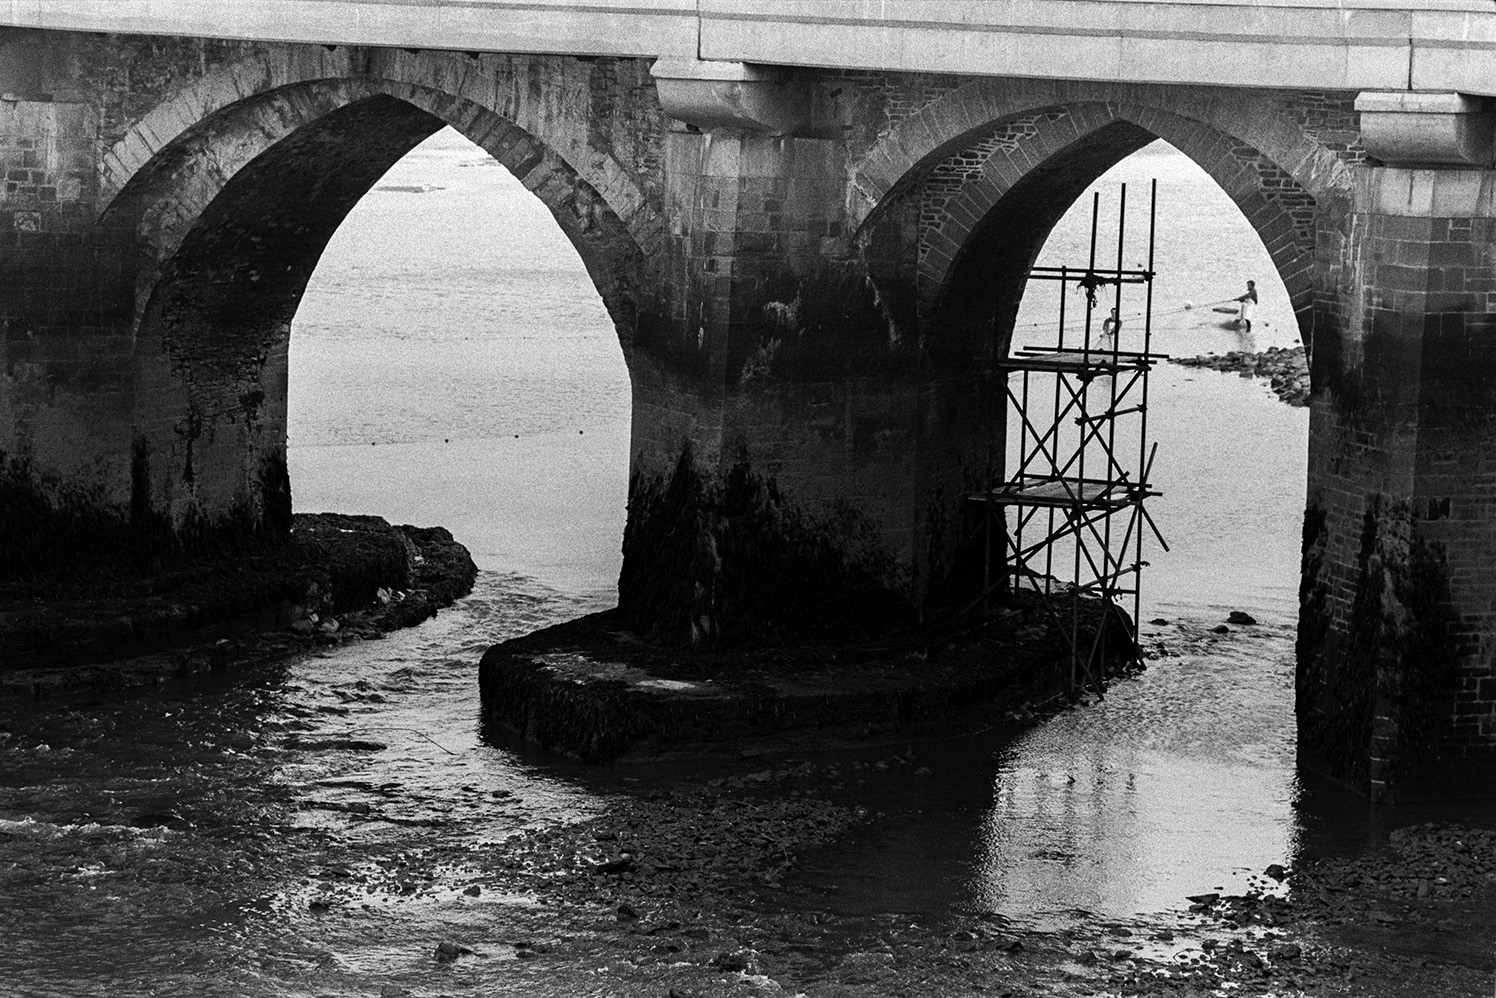 Scaffolding on one of the arches of Bideford Long Bridge, also known as Bideford Old Bridge. People can be seen netting salmon in the River Torridge through one of the bridge arches.